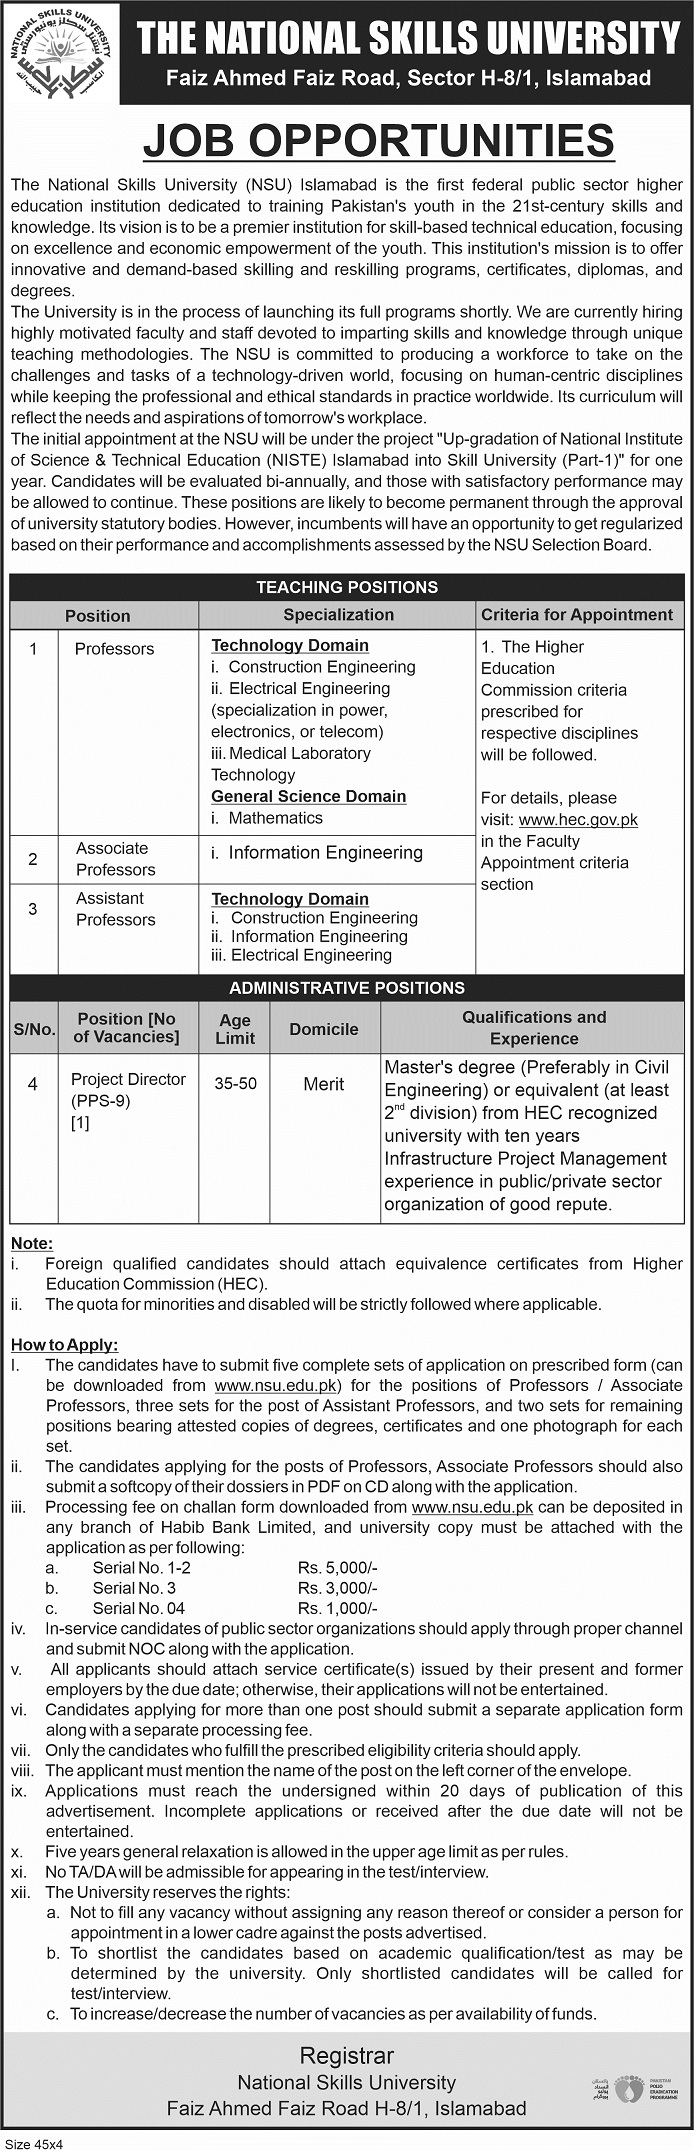 National Skills University jobs newspaper ad for Assistant Professor in Islamabad on 2021-04-04